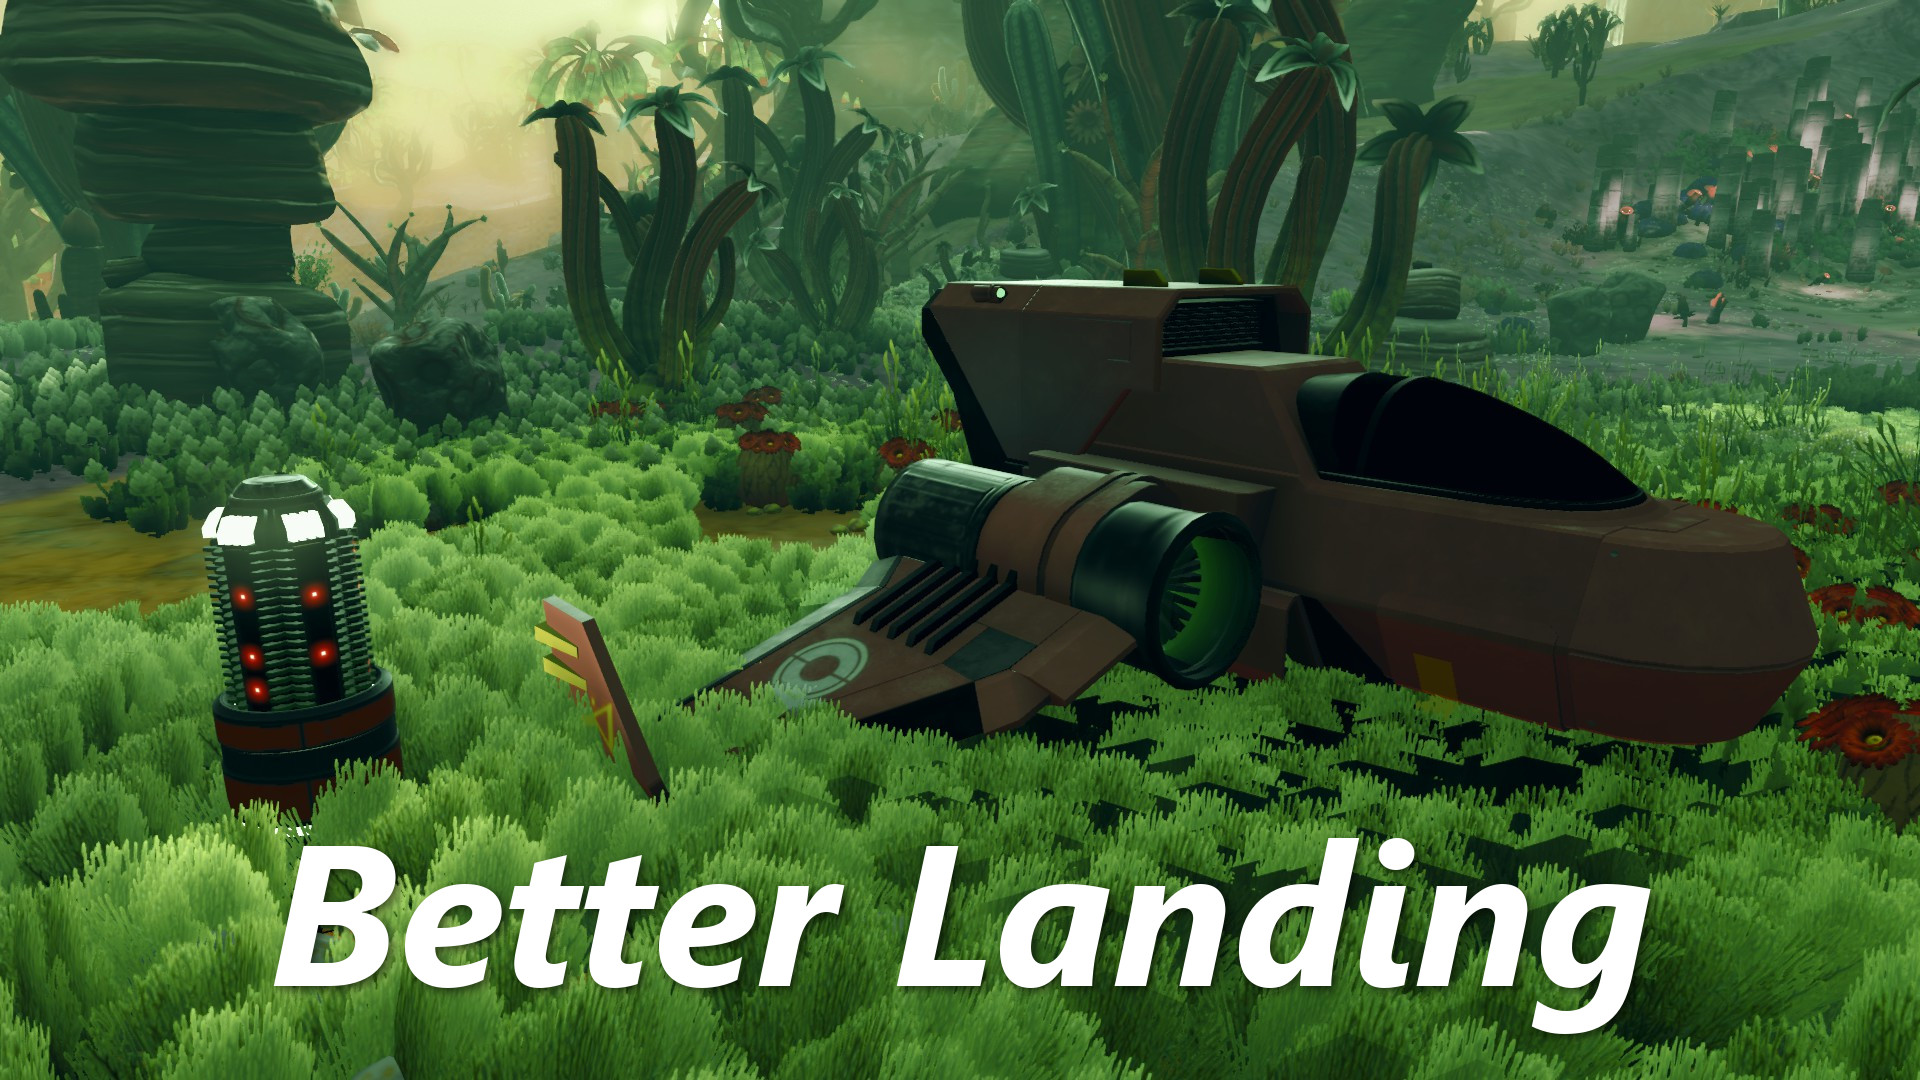 Better Landing (Pathfinder)